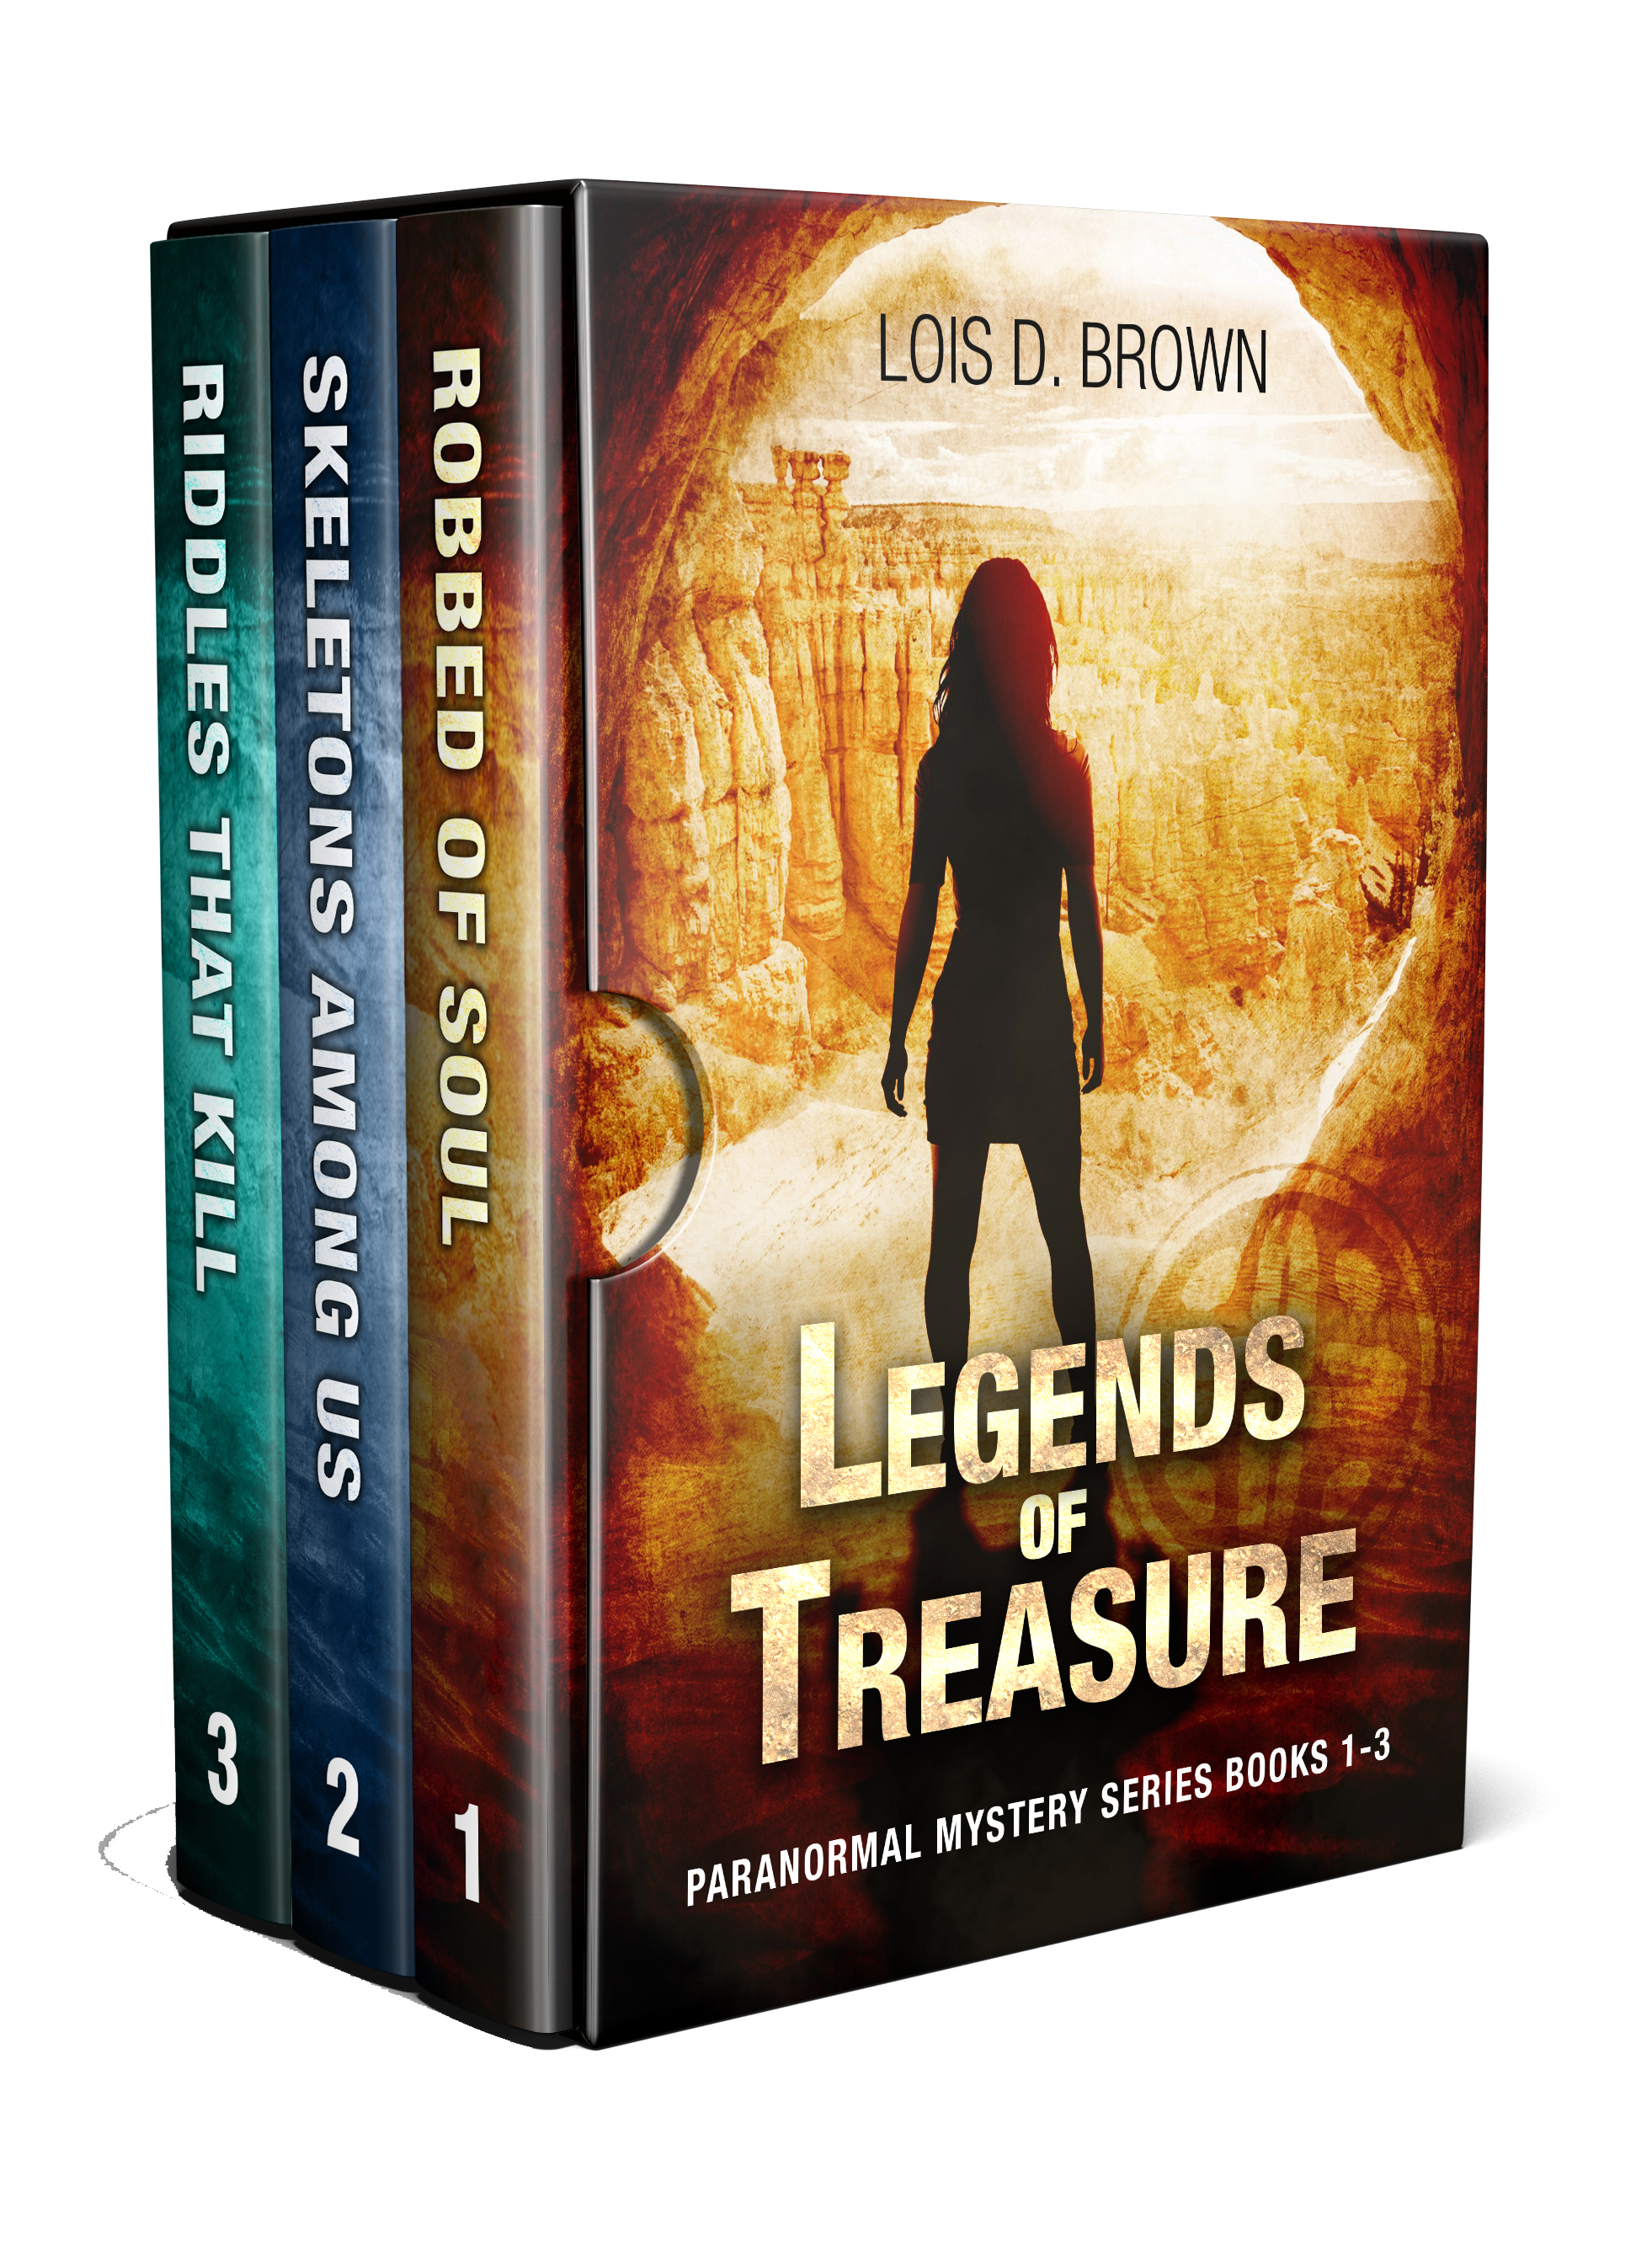 Legends of Treasure Box Set cover with no background